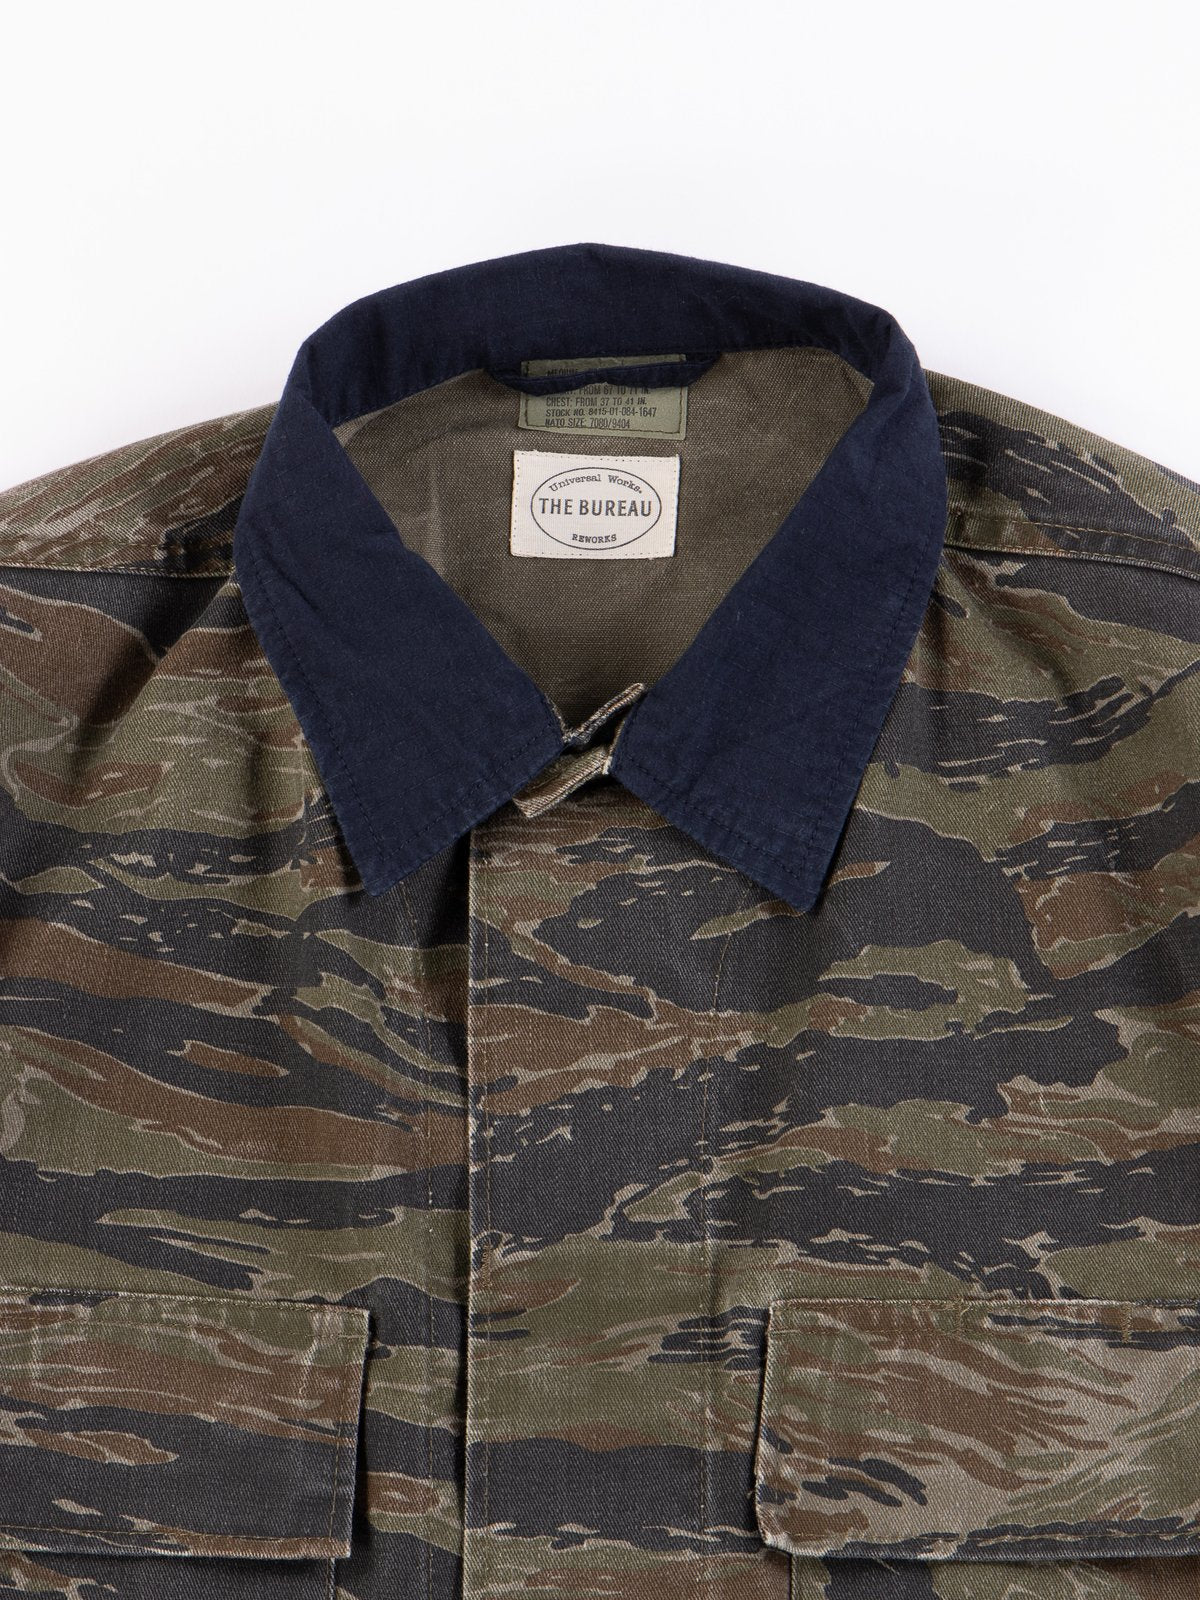 Universal Works collaboration with the bureau belfast on a camouflage and ripstop vintage army jacket.